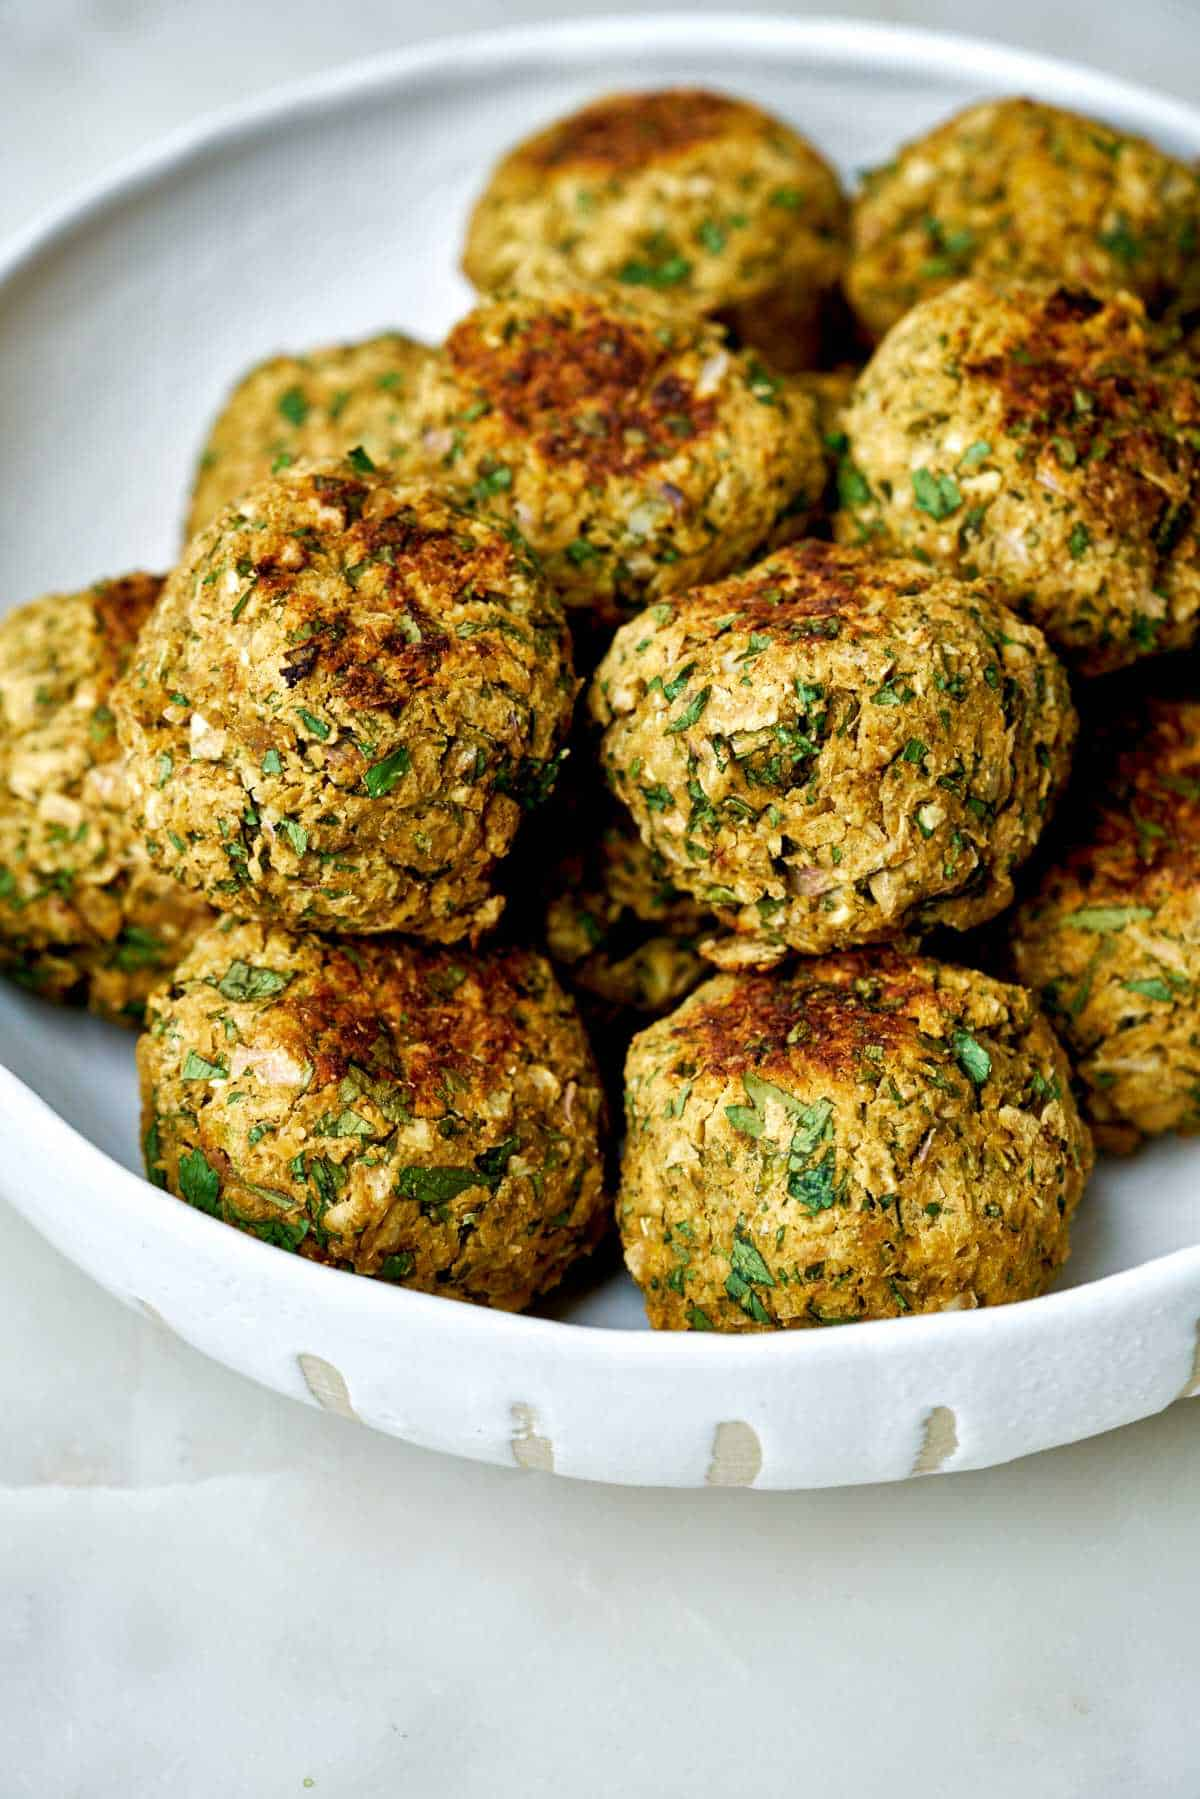 Dish filled with falafel.